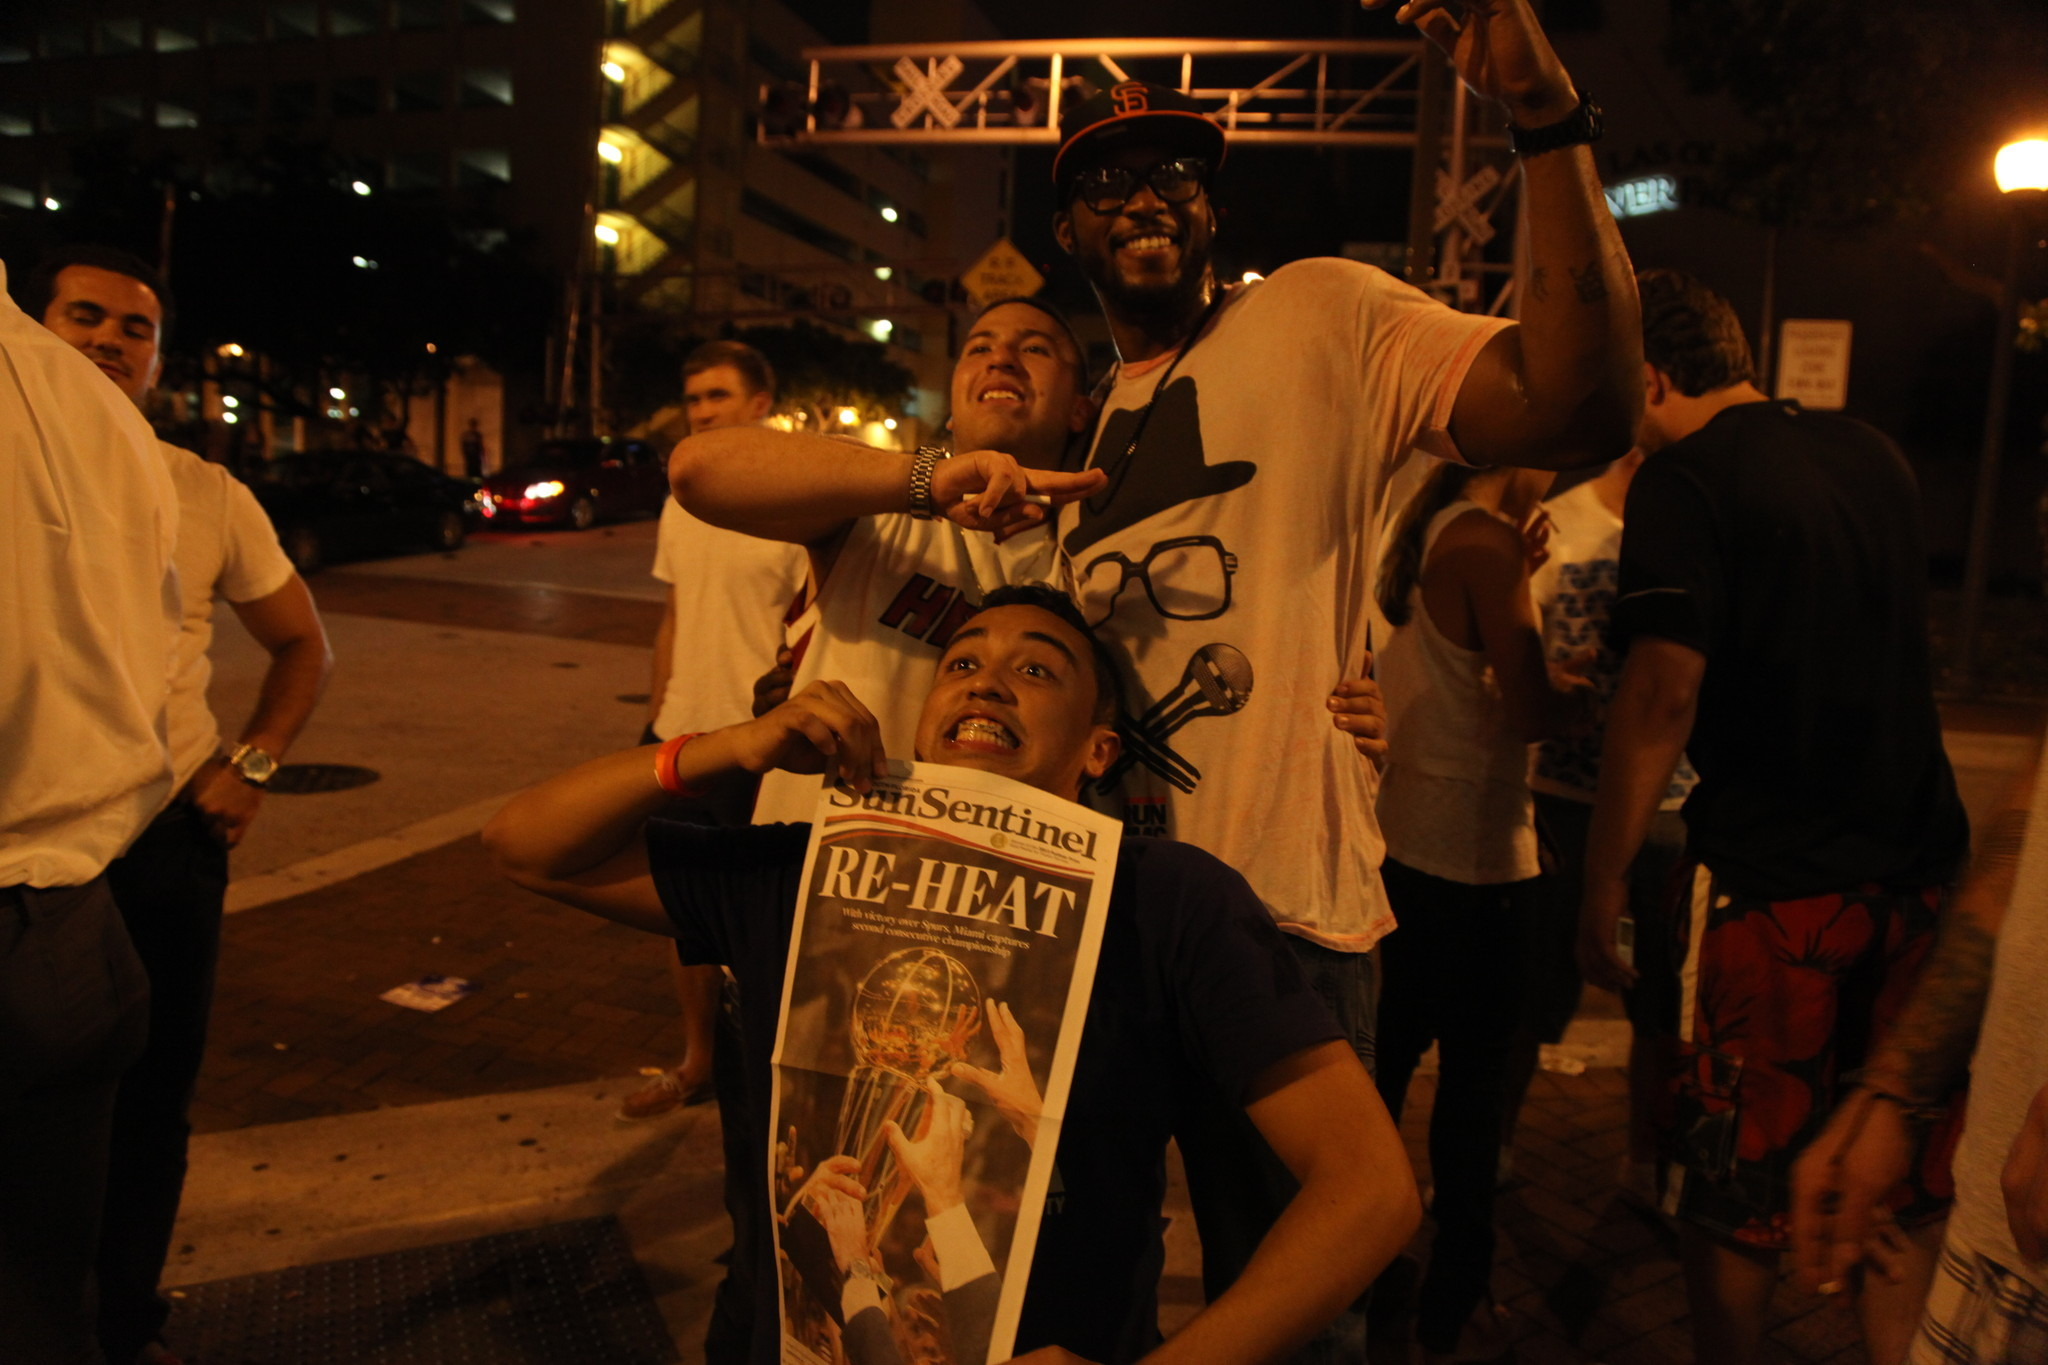 White Hot Heat Fans Game 7 - Heat Fan Reactions